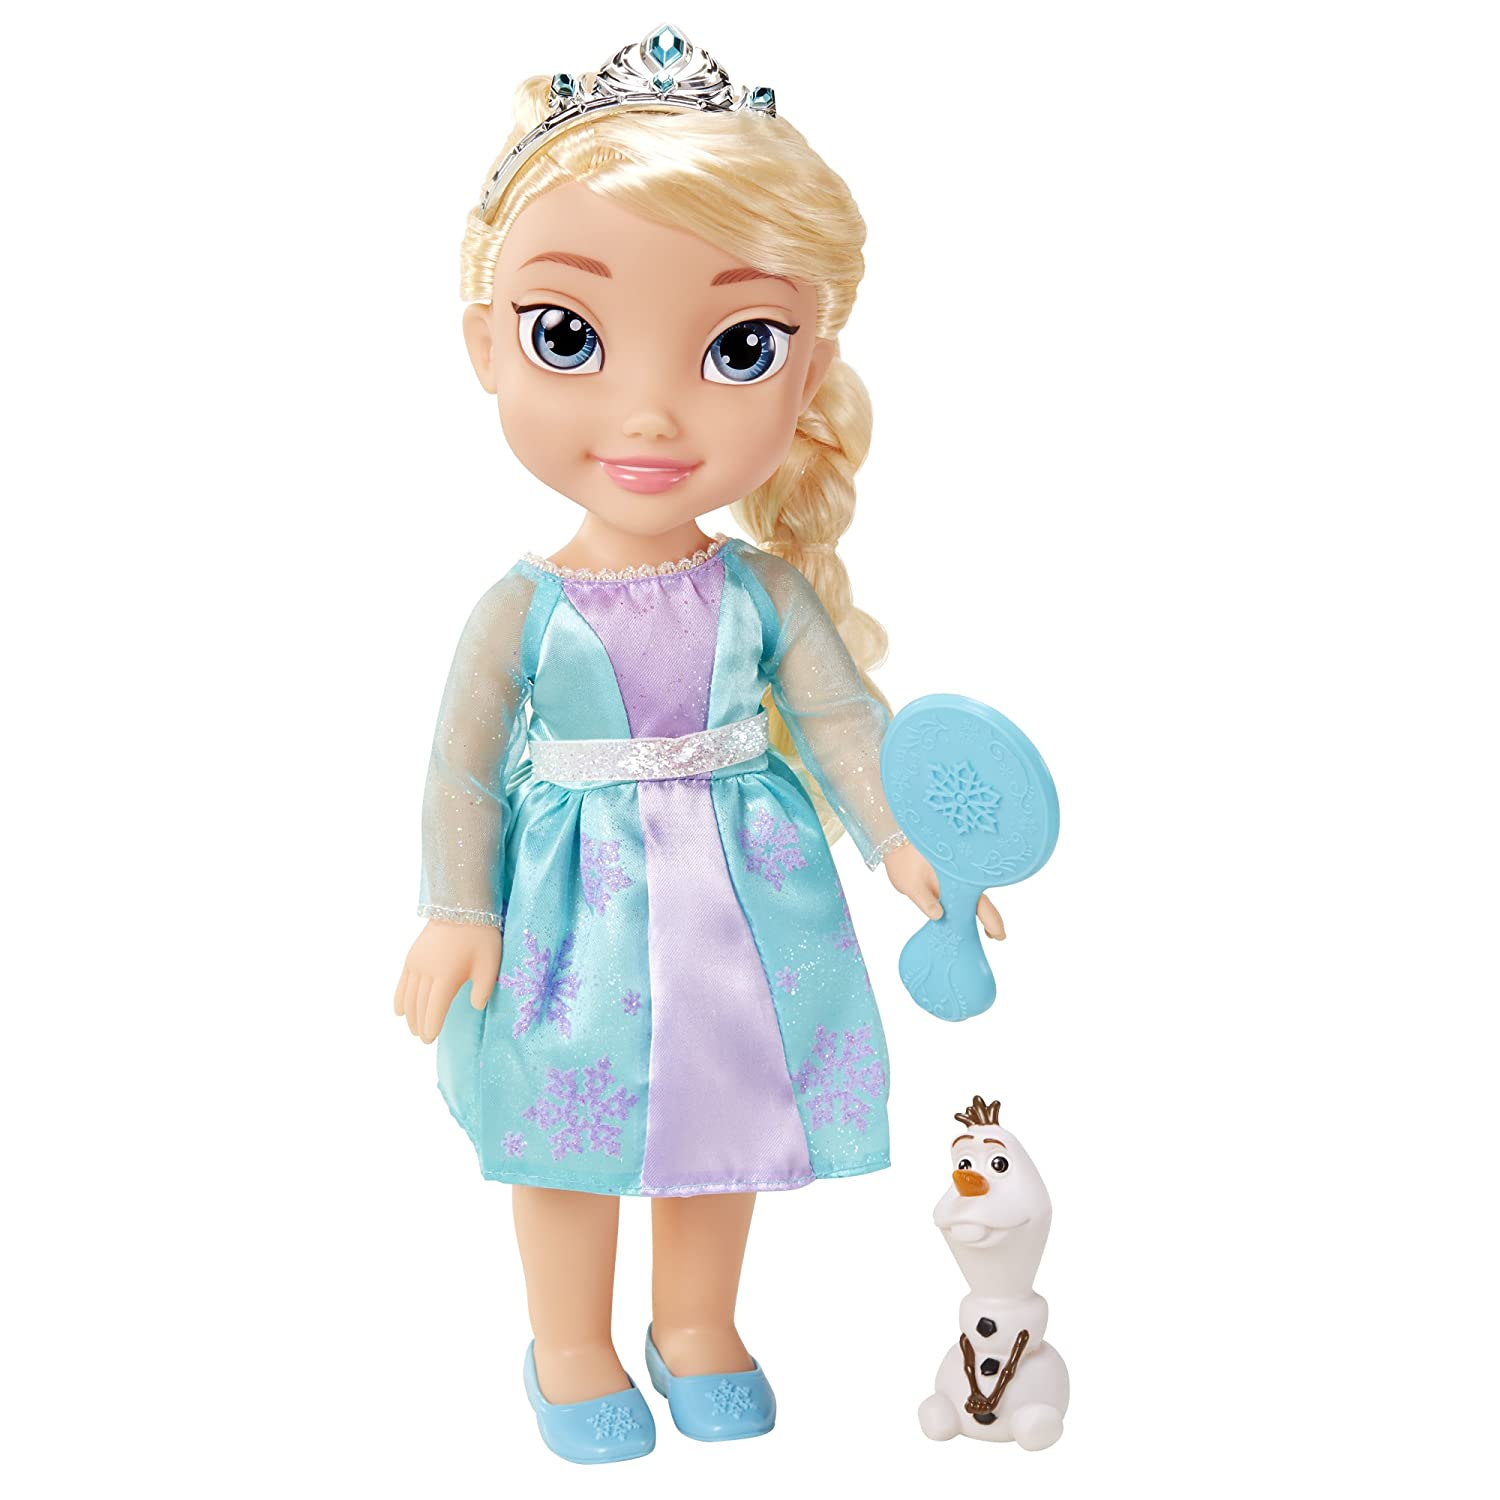 Girl Toy Figures : Fab disney frozen toys for girls